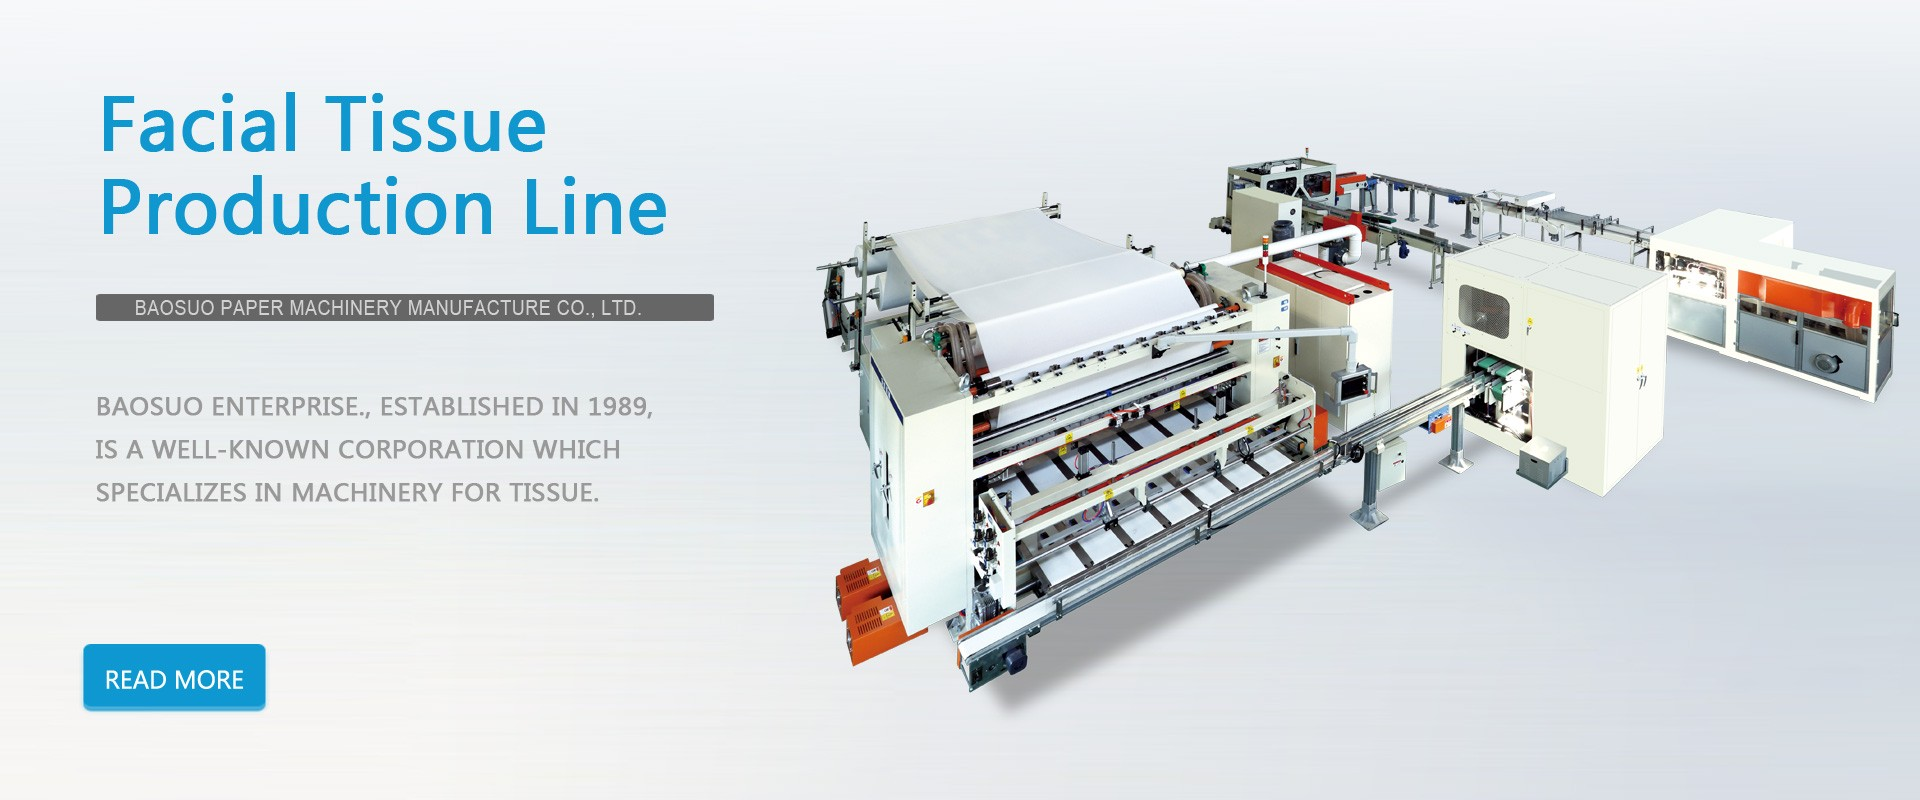 1500 mm - 2200 mm Auto Transfer Automatic Facial Tissue Production Line